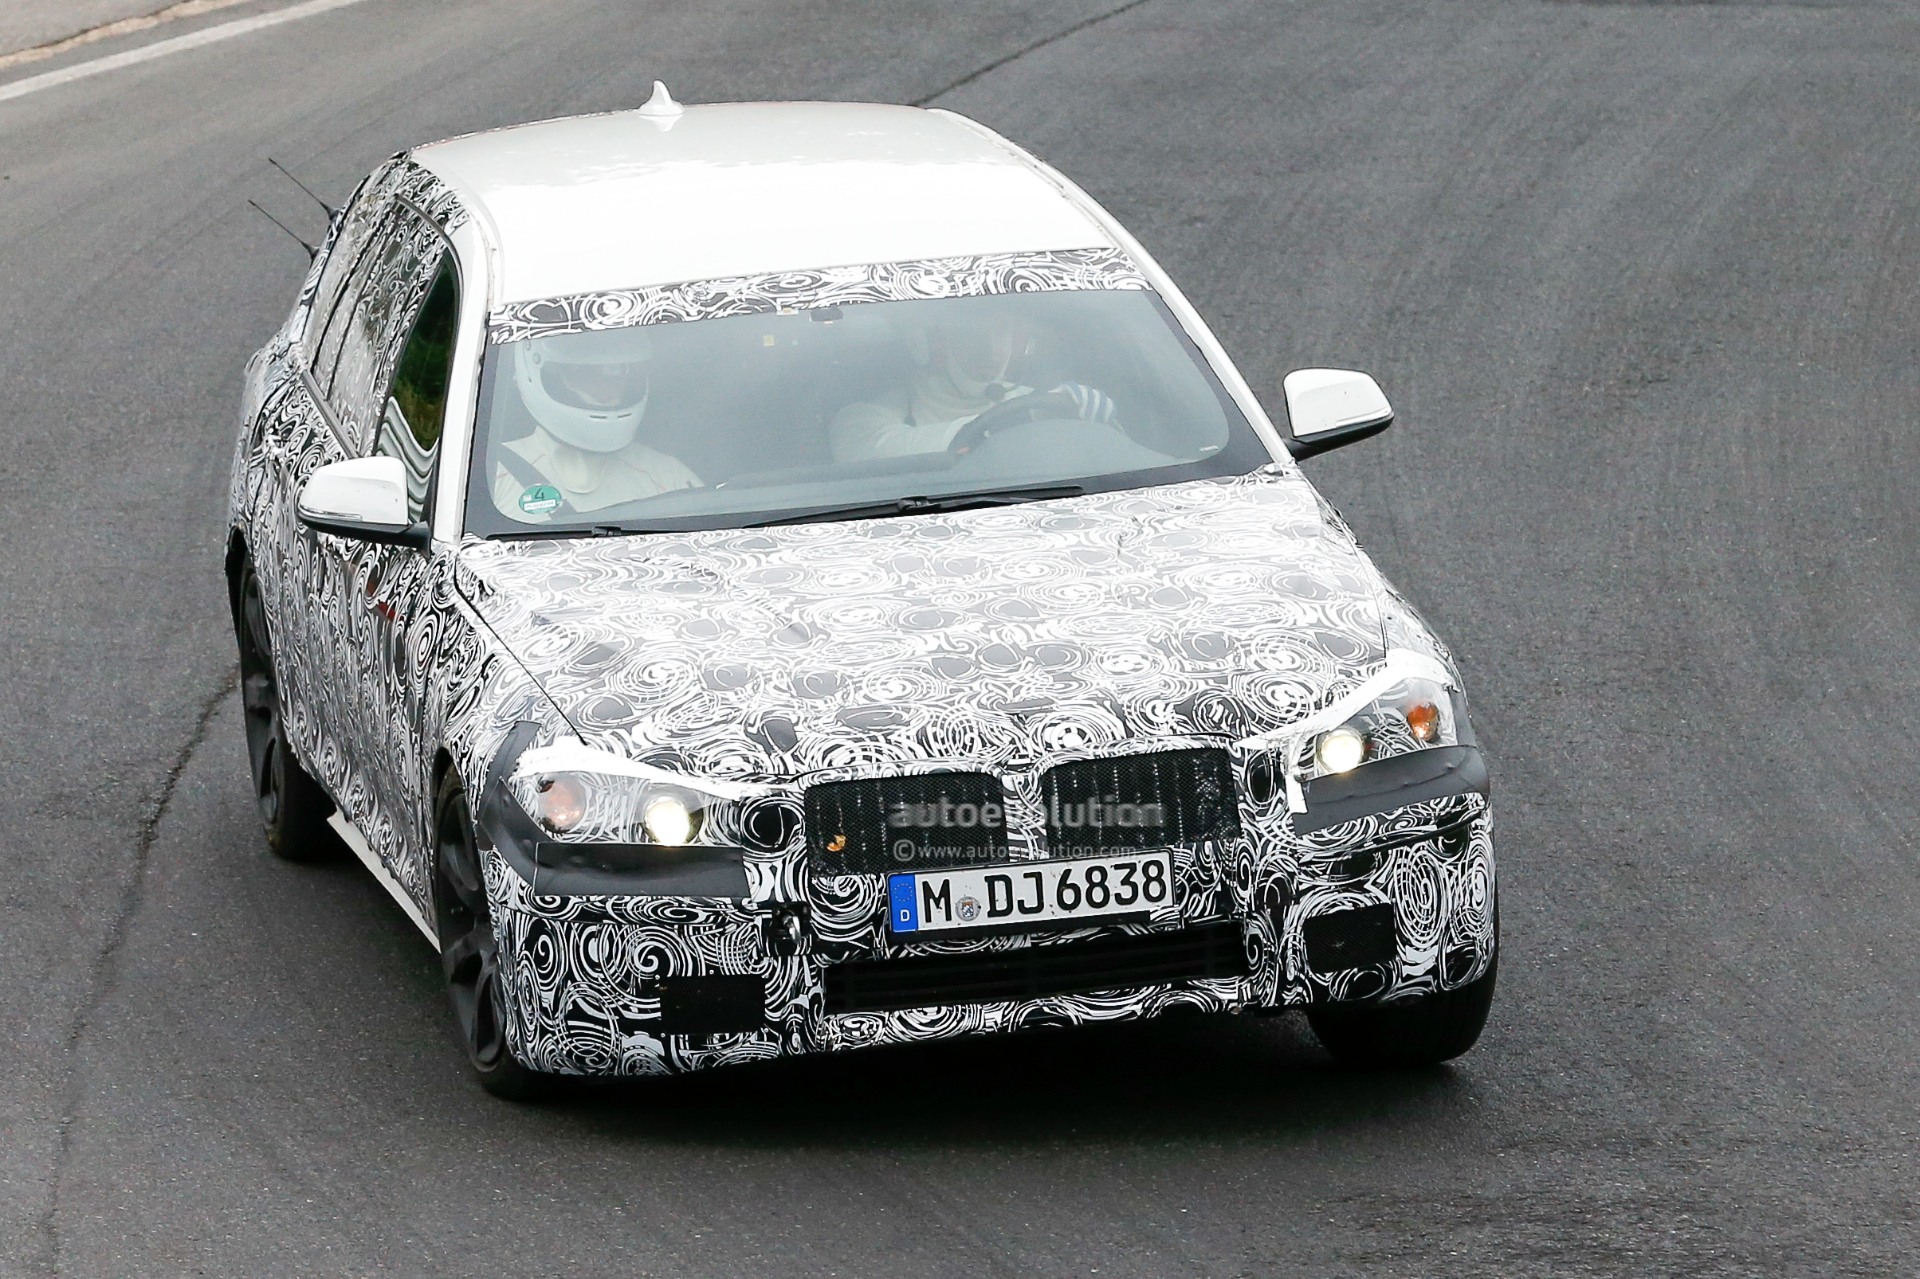 2016 - [BMW] Série 5 Berline & Touring [G30/G31] - Page 4 2016-bmw-5-series-touring-prototype-spied-inside-and-out-photo-gallery_3